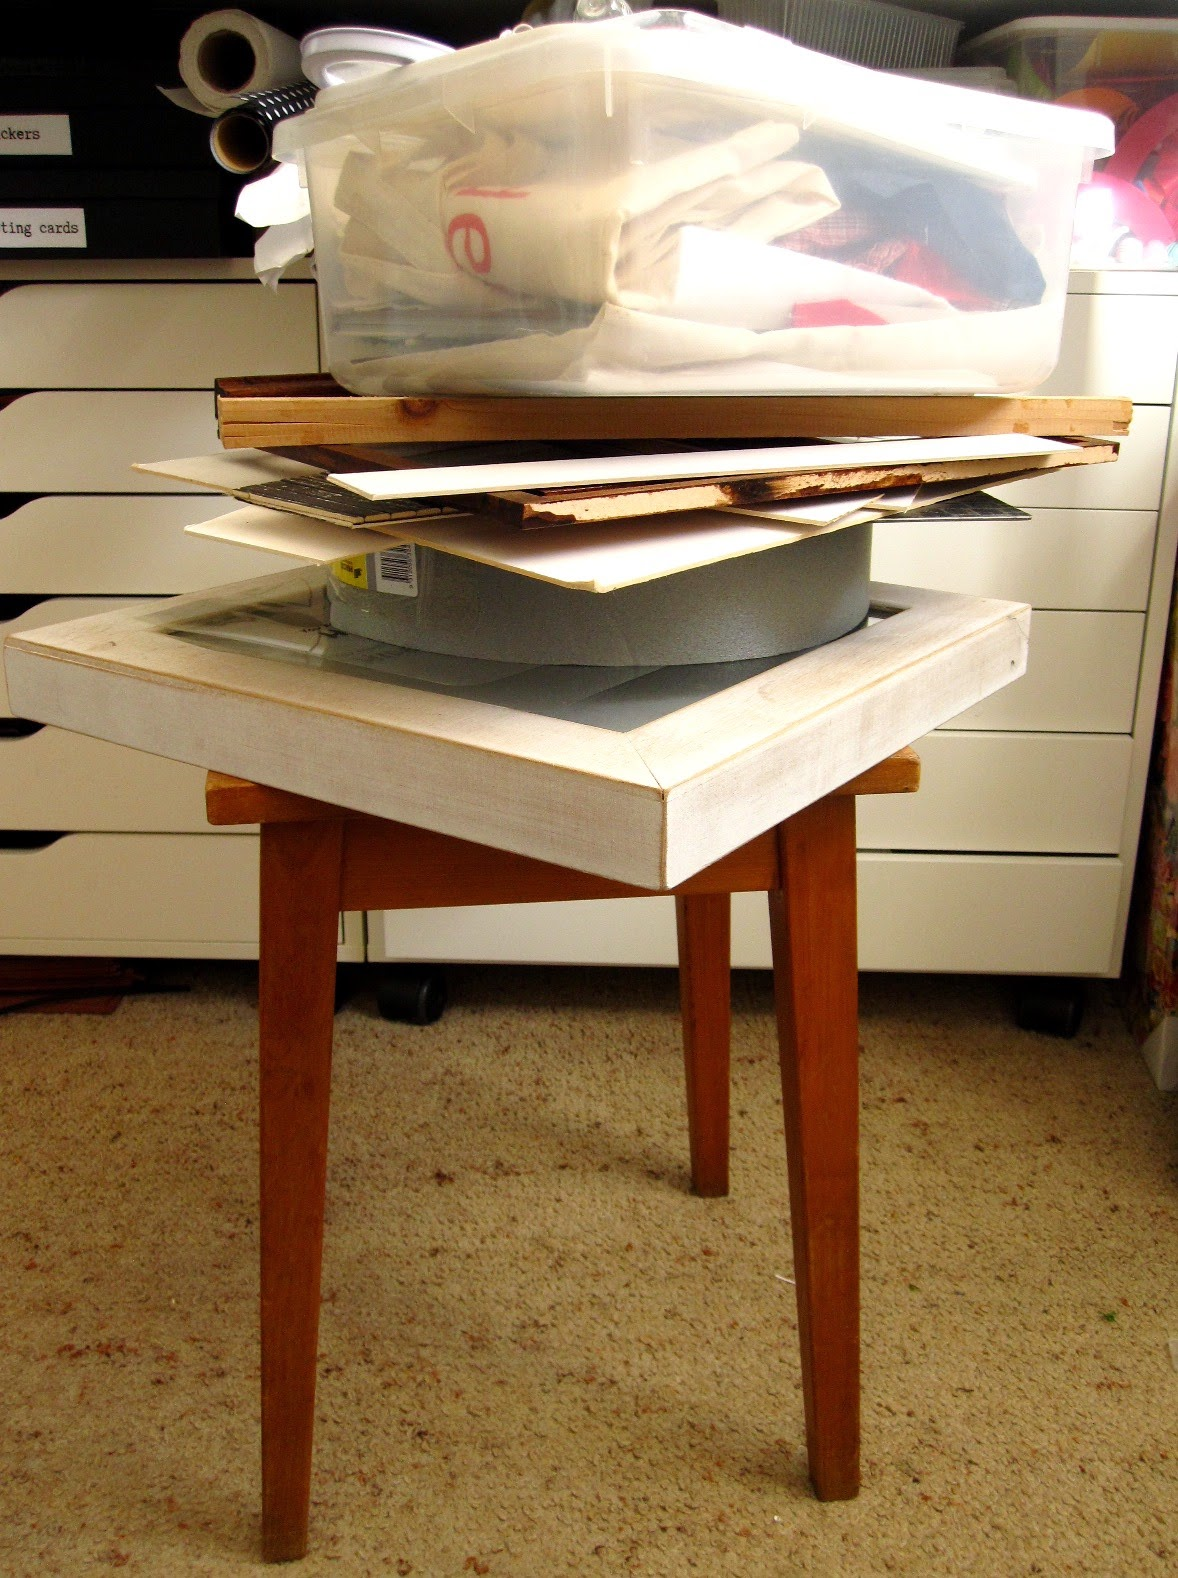 Wooden stool with a pile of wooden and cardboard pieces on top of it, topped with a plastic container full of fabric.